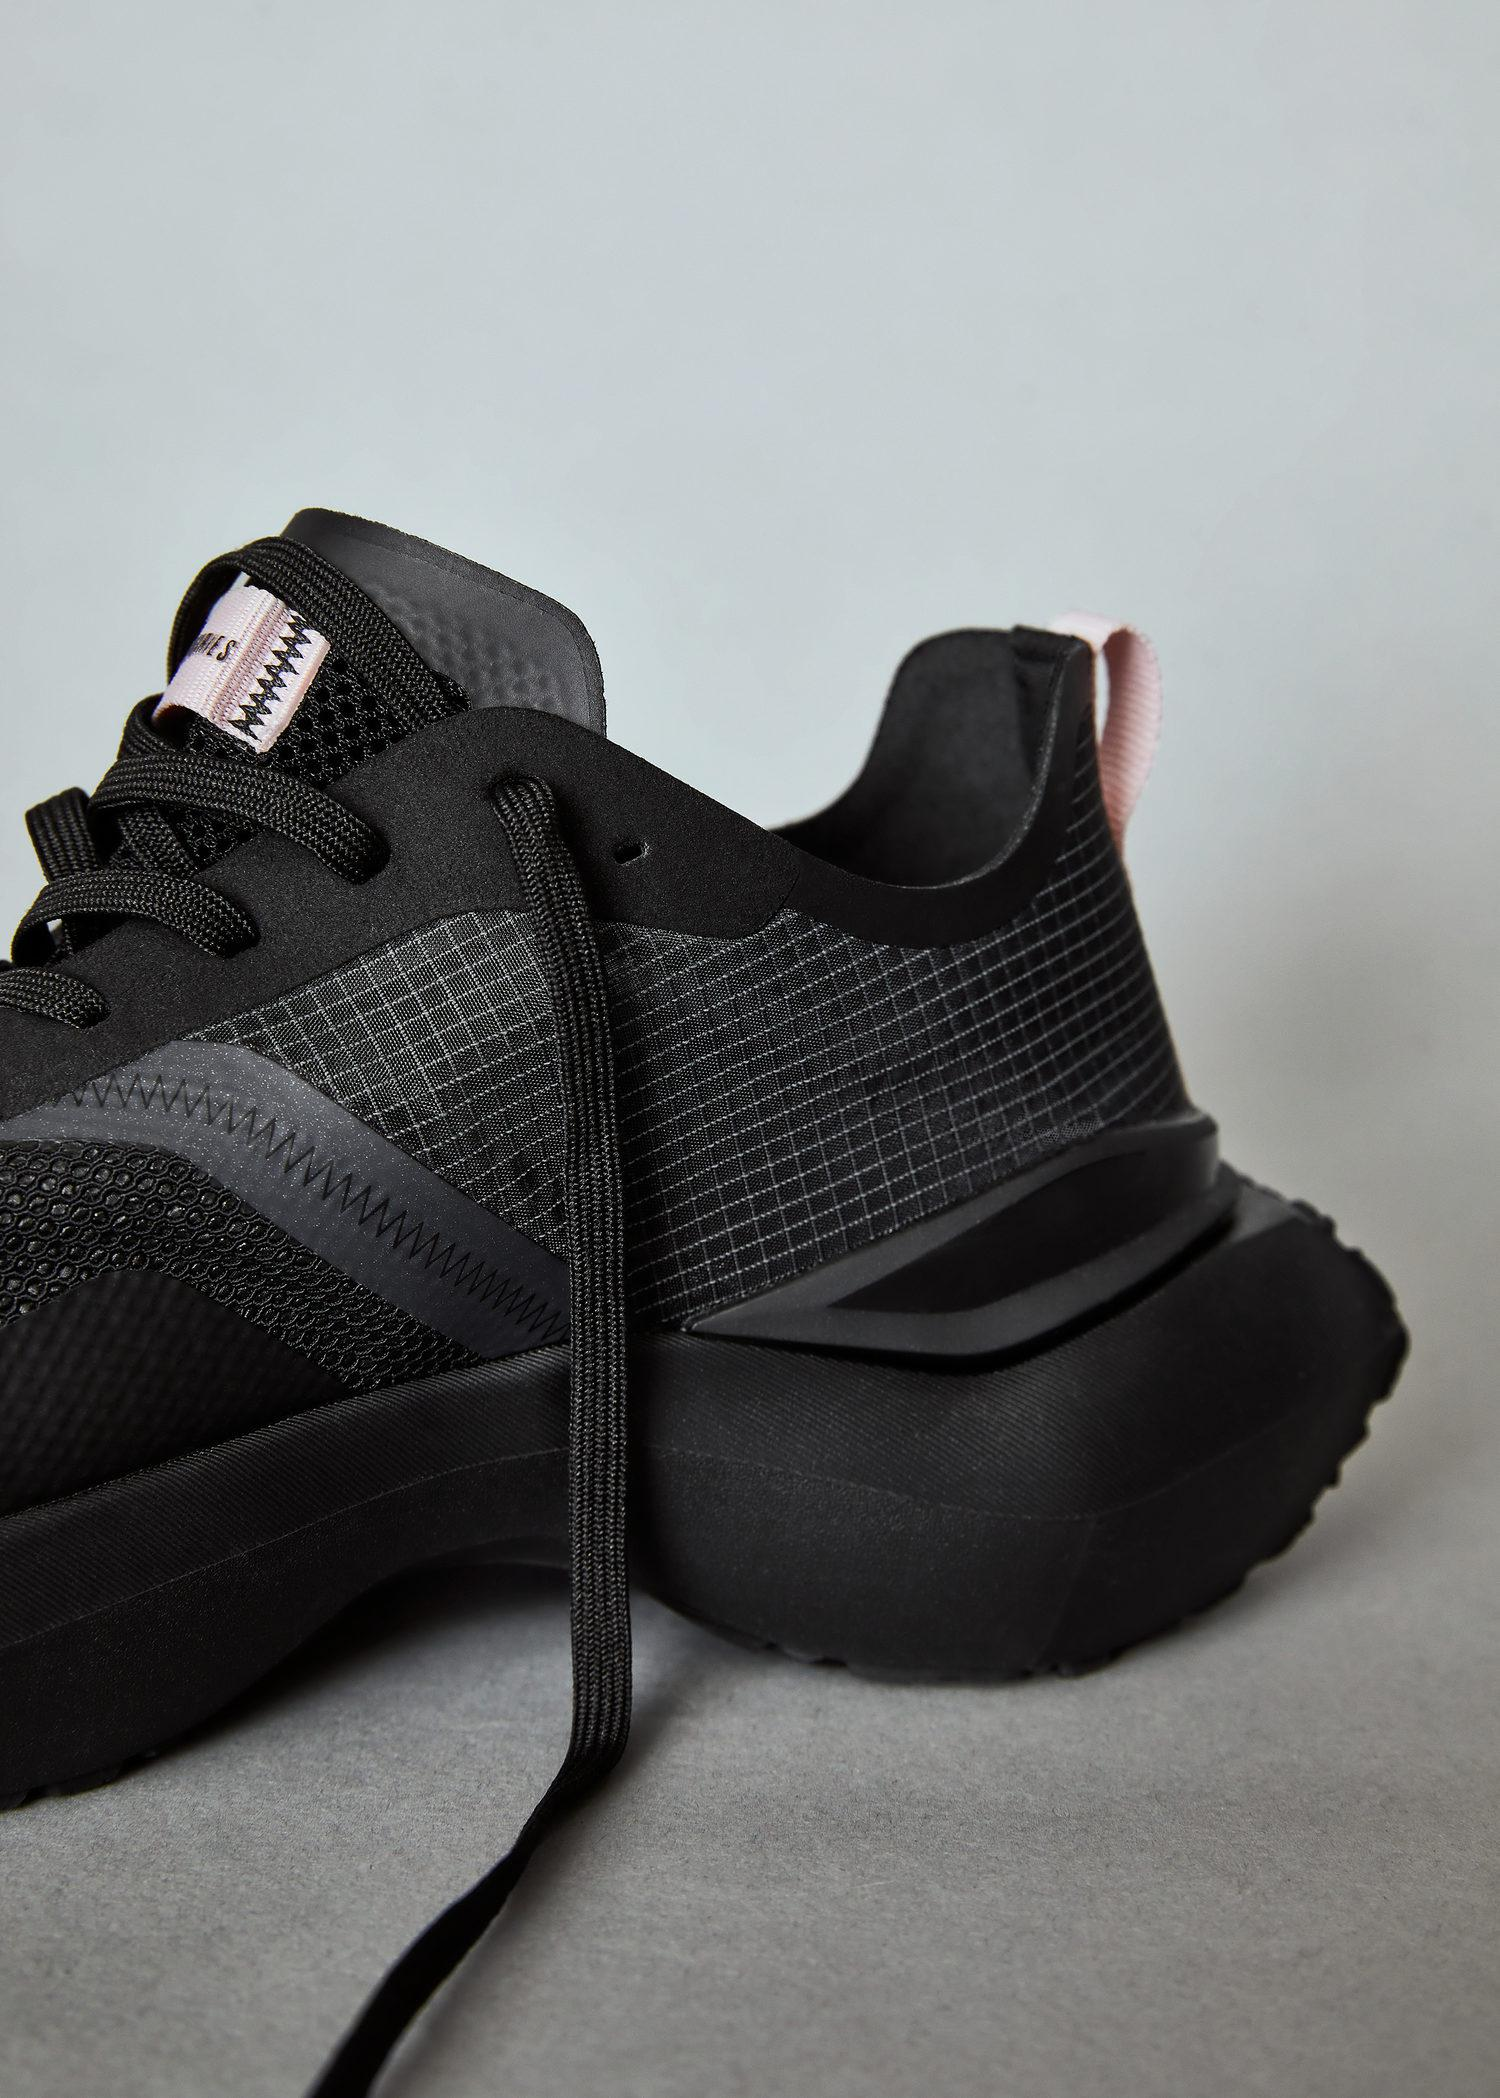 Shoes with transparent panels 6